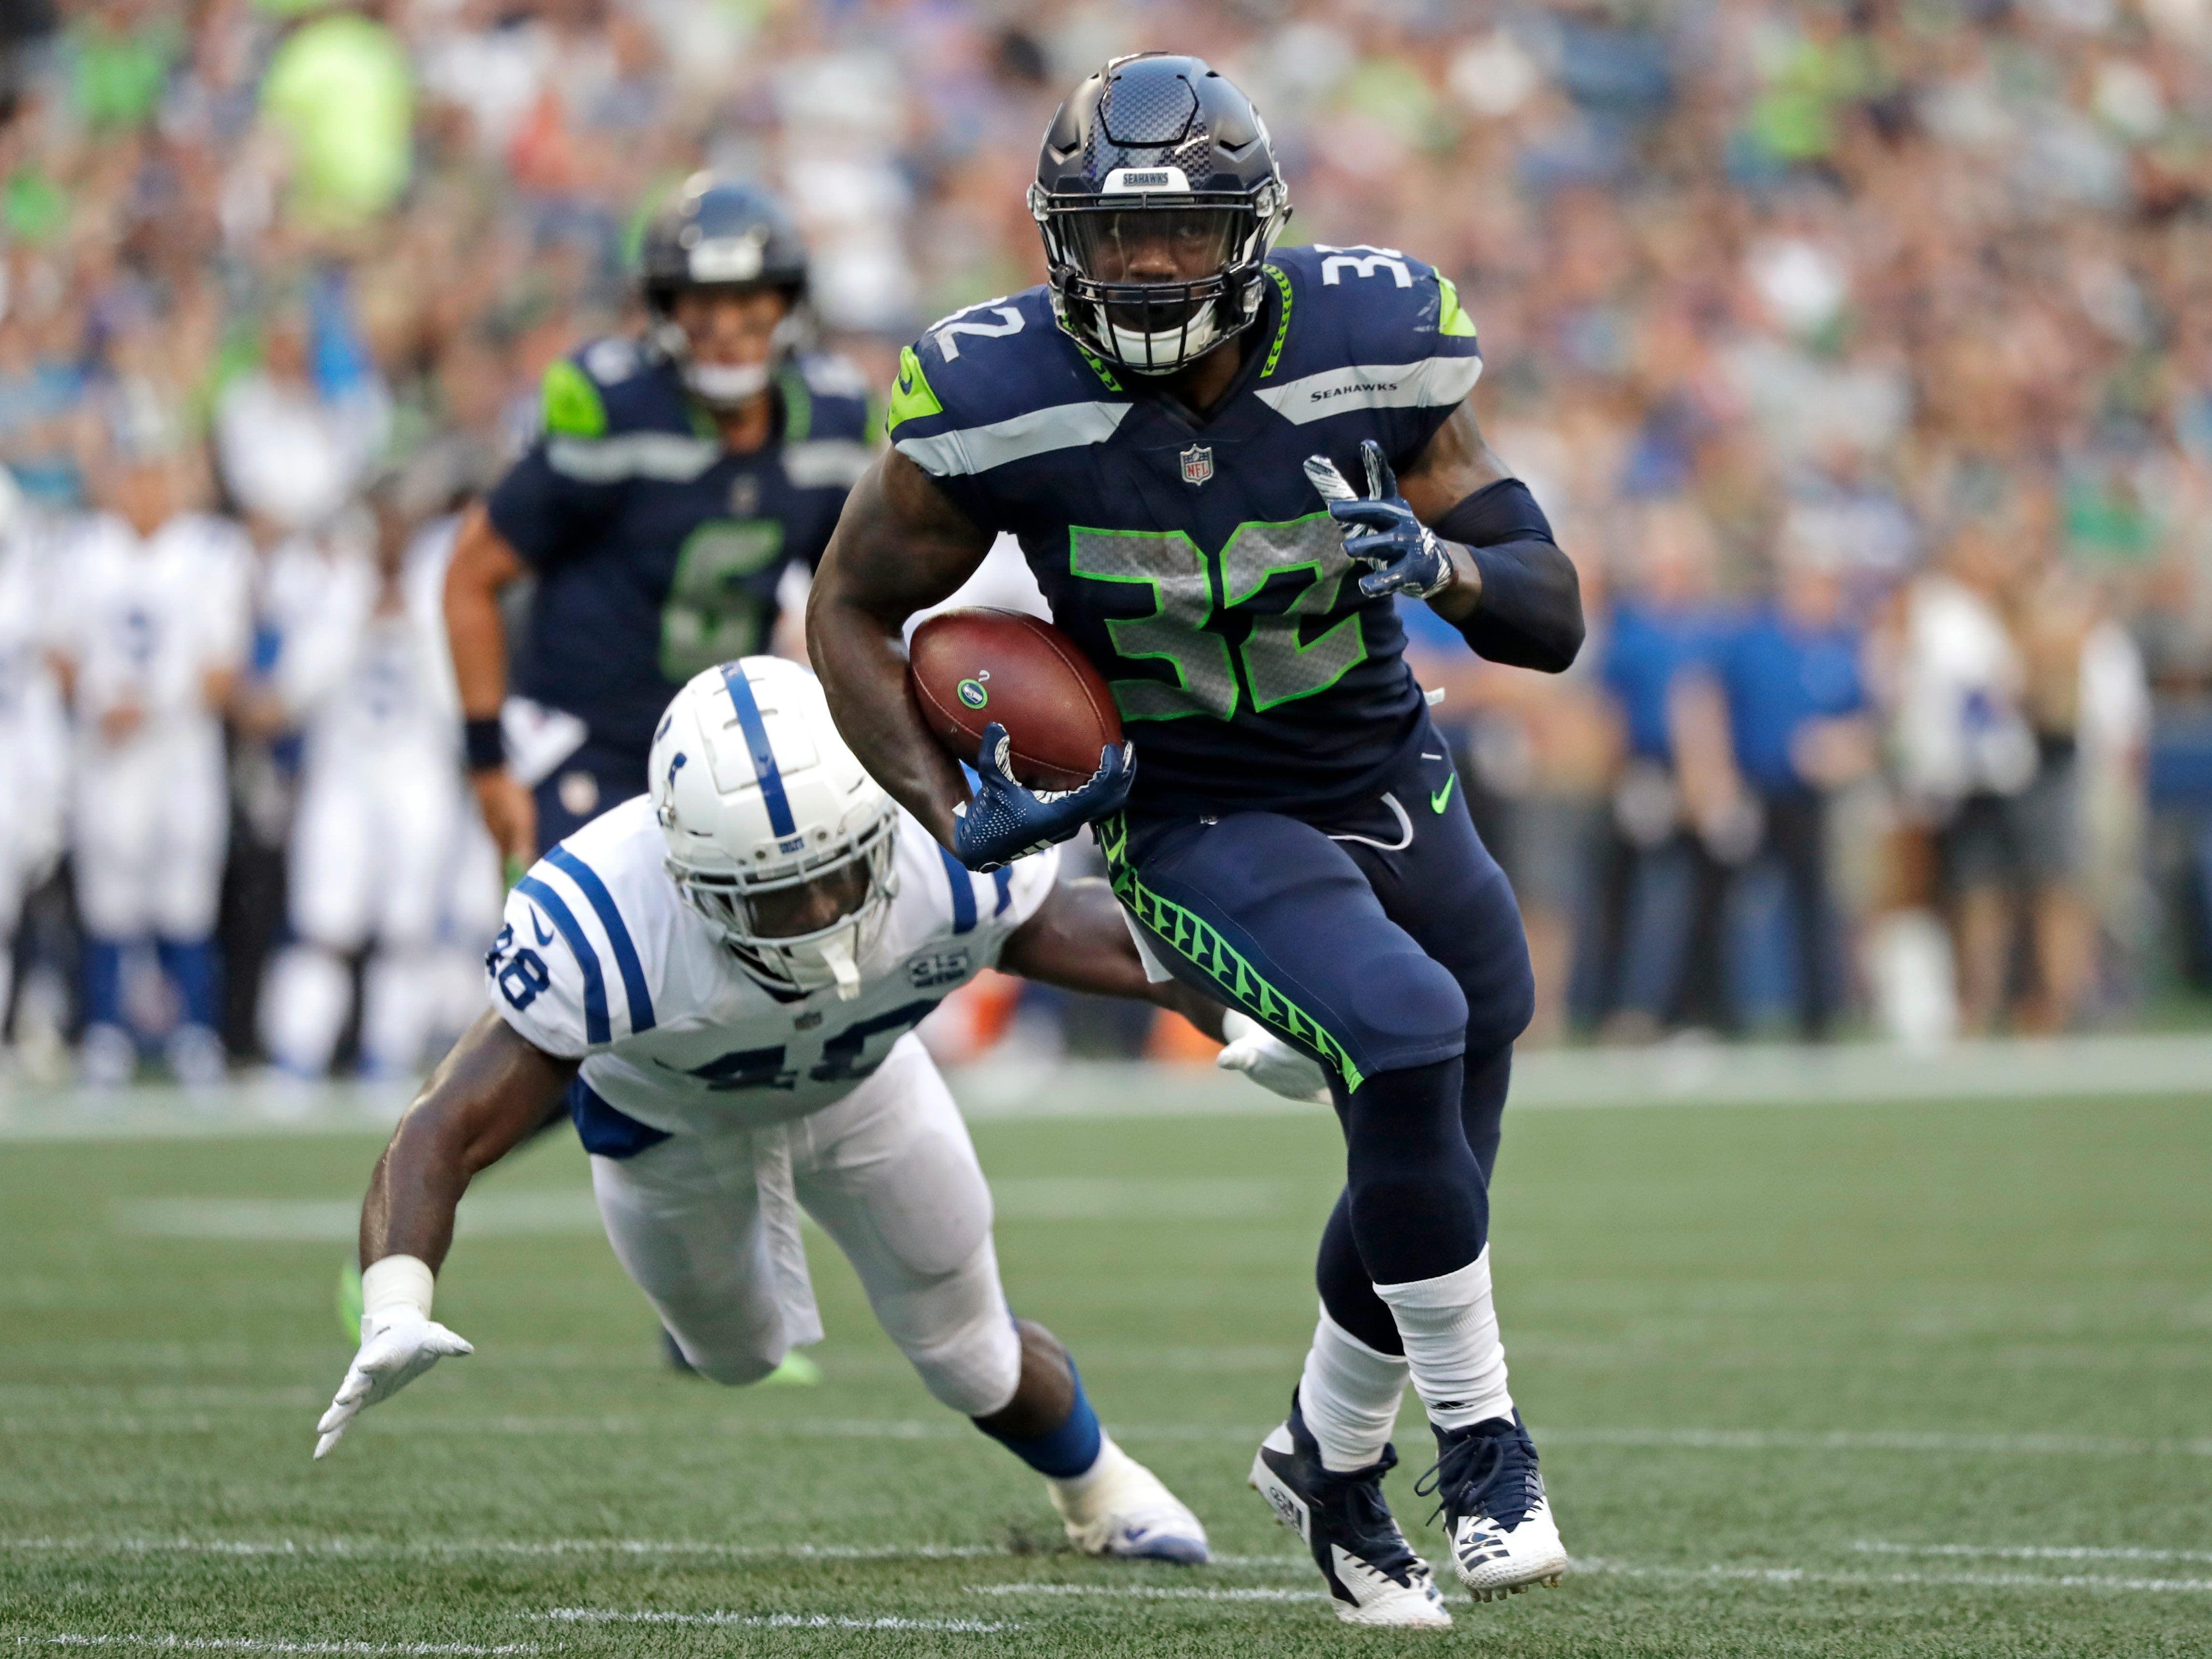 Seattle Seahawks running back Chris Carson (32) outruns a tackle-attempt by Indianapolis Colts linebacker Skai Moore during the first half of an NFL football preseason game, Thursday, Aug. 9, 2018, in Seattle. (AP Photo/Elaine Thompson)